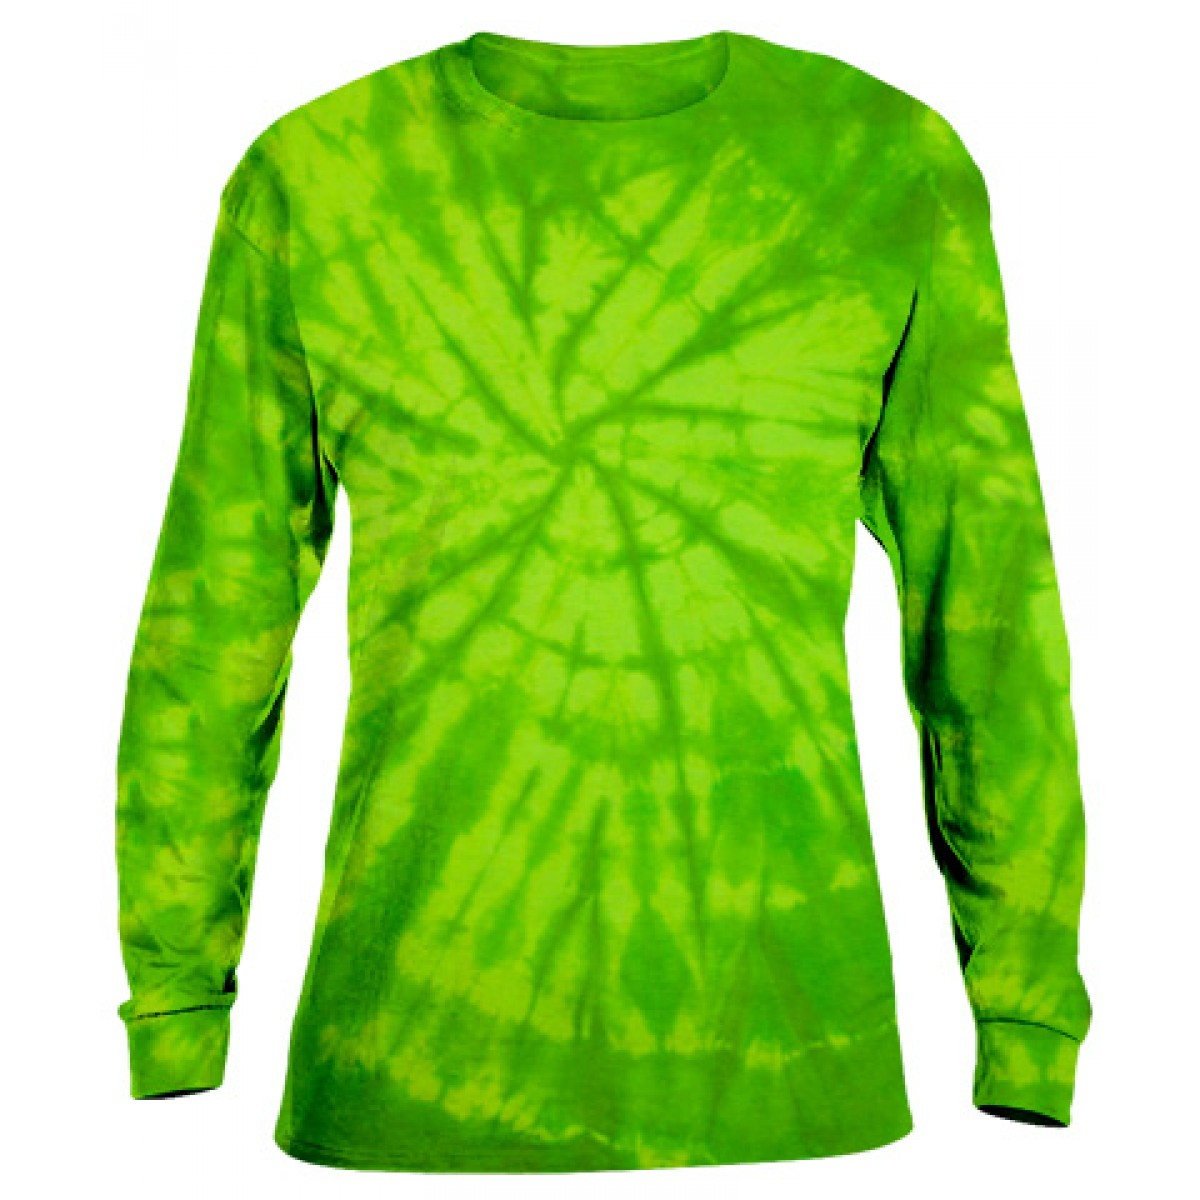 Tie-Dye Long Sleeve Shirt -Lime Green-2XL